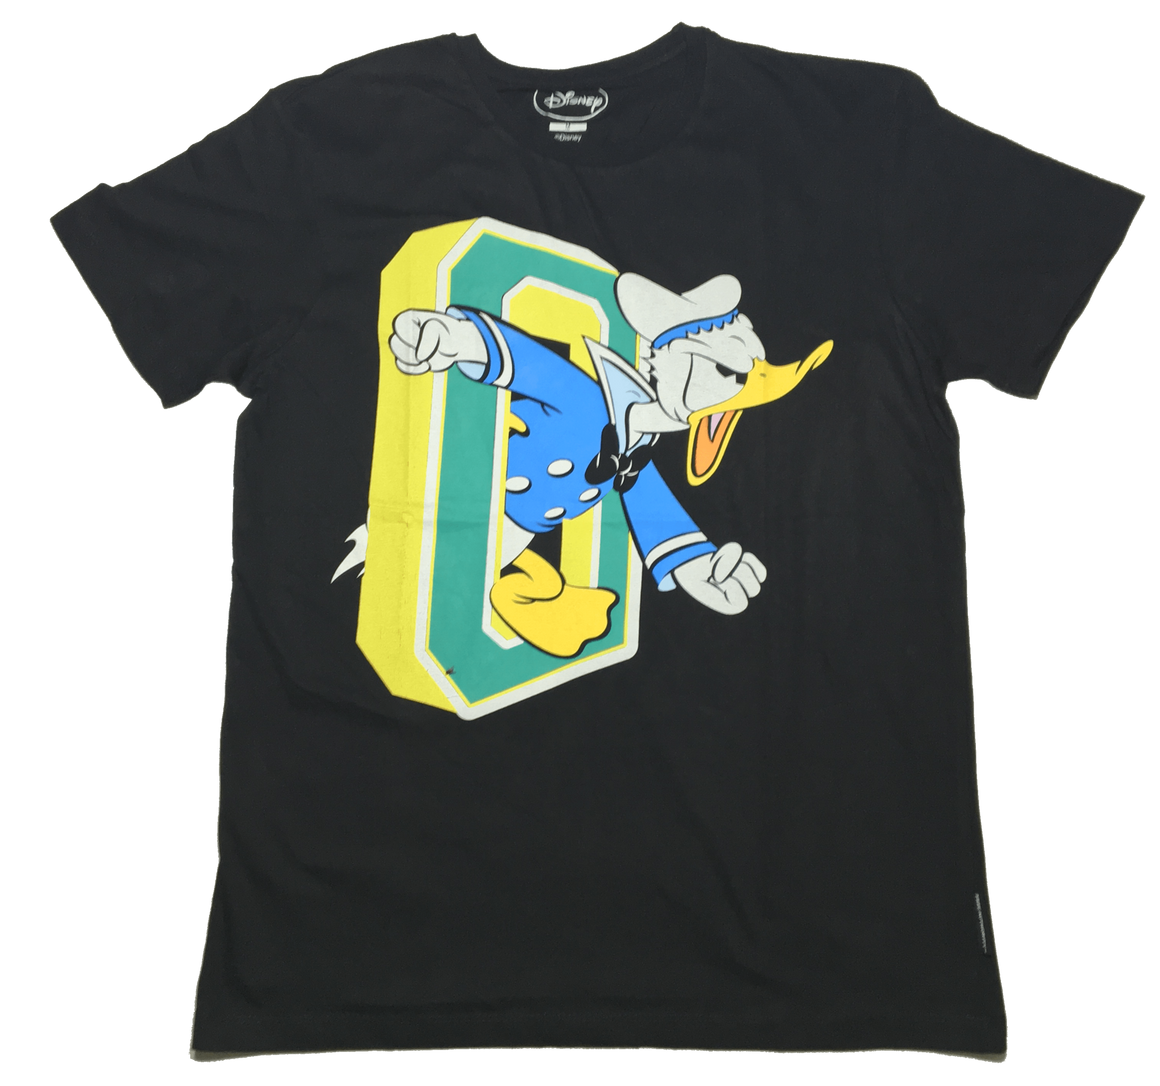 Daffy Duck Black T-shirt by Bio World-Bio World- www.superherotoystore.com-T-Shirt - 1